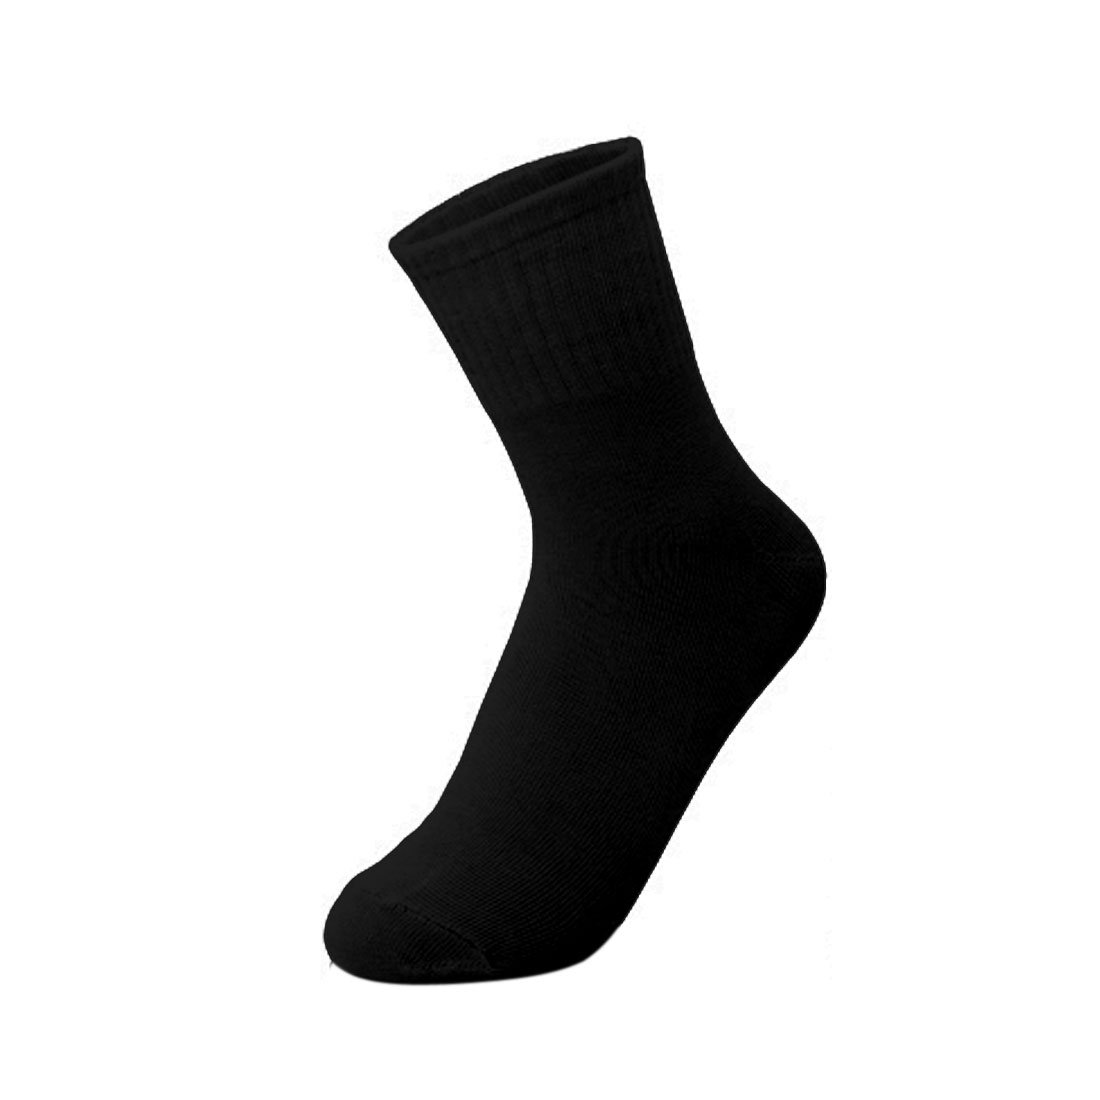 uxcell 5 Pair Women Black One Size Portable Disposable Replacing Stretchy Socks for Travel Business